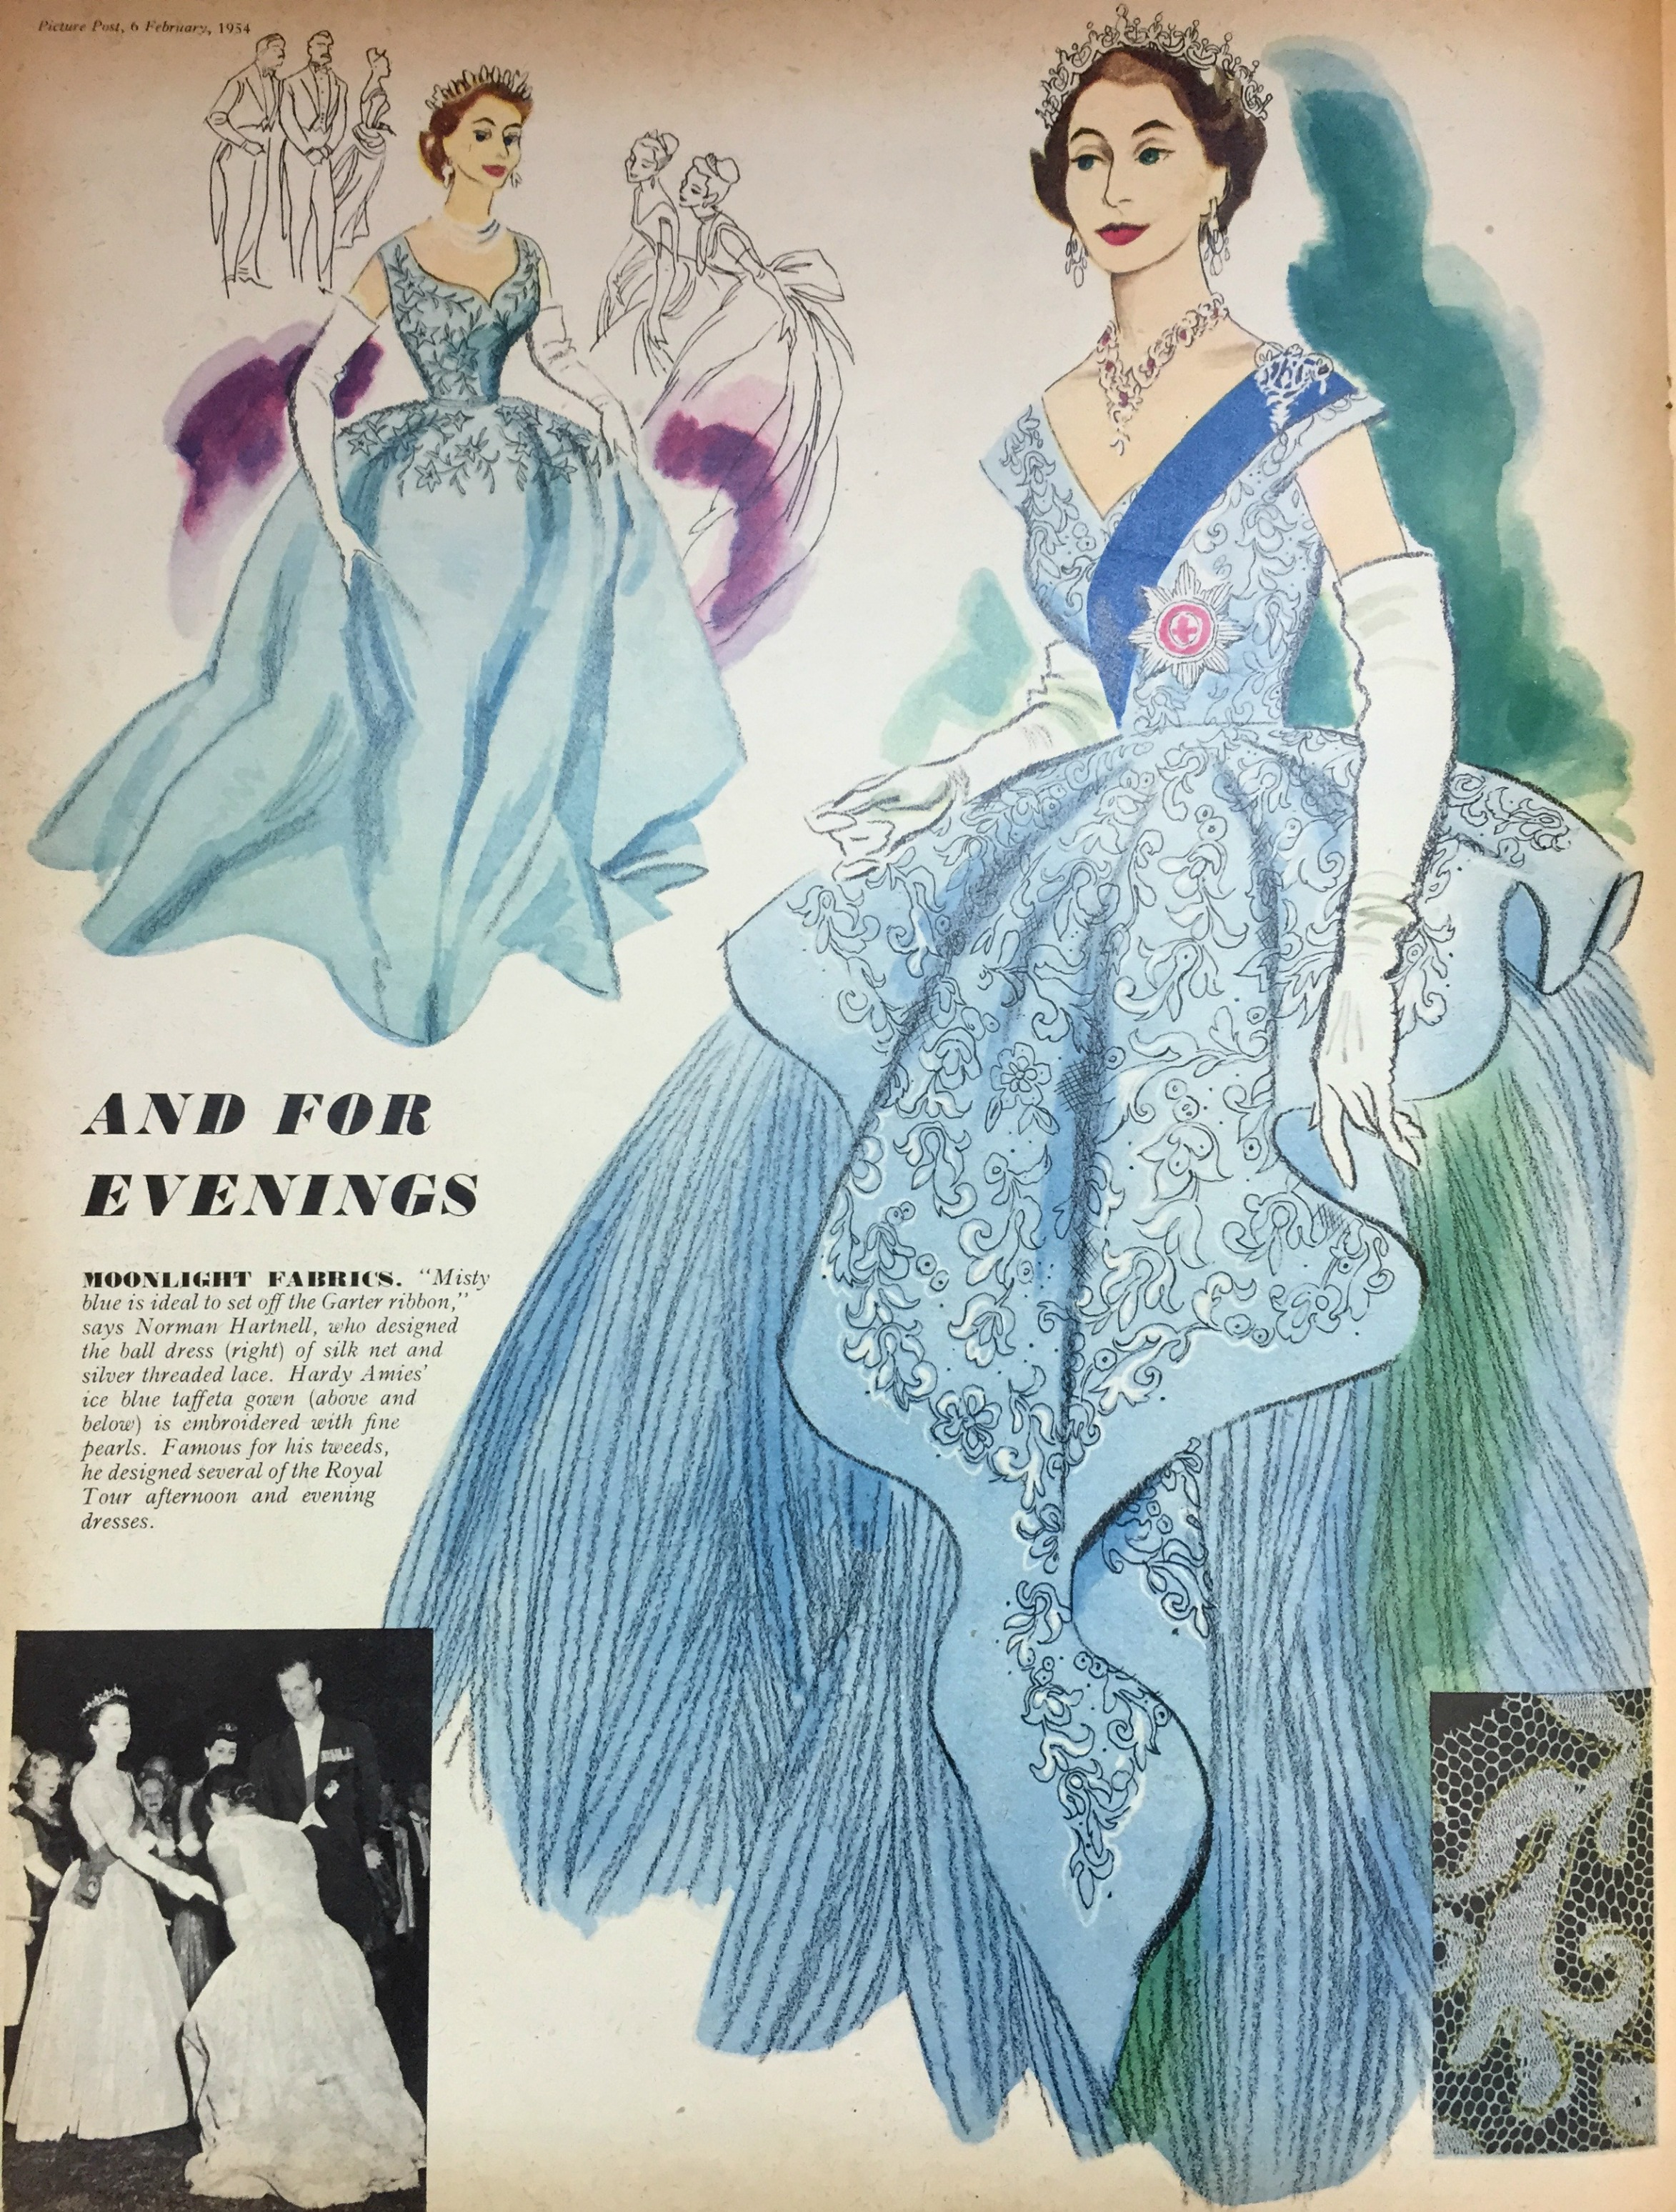 The Queen Evening fashion 1954